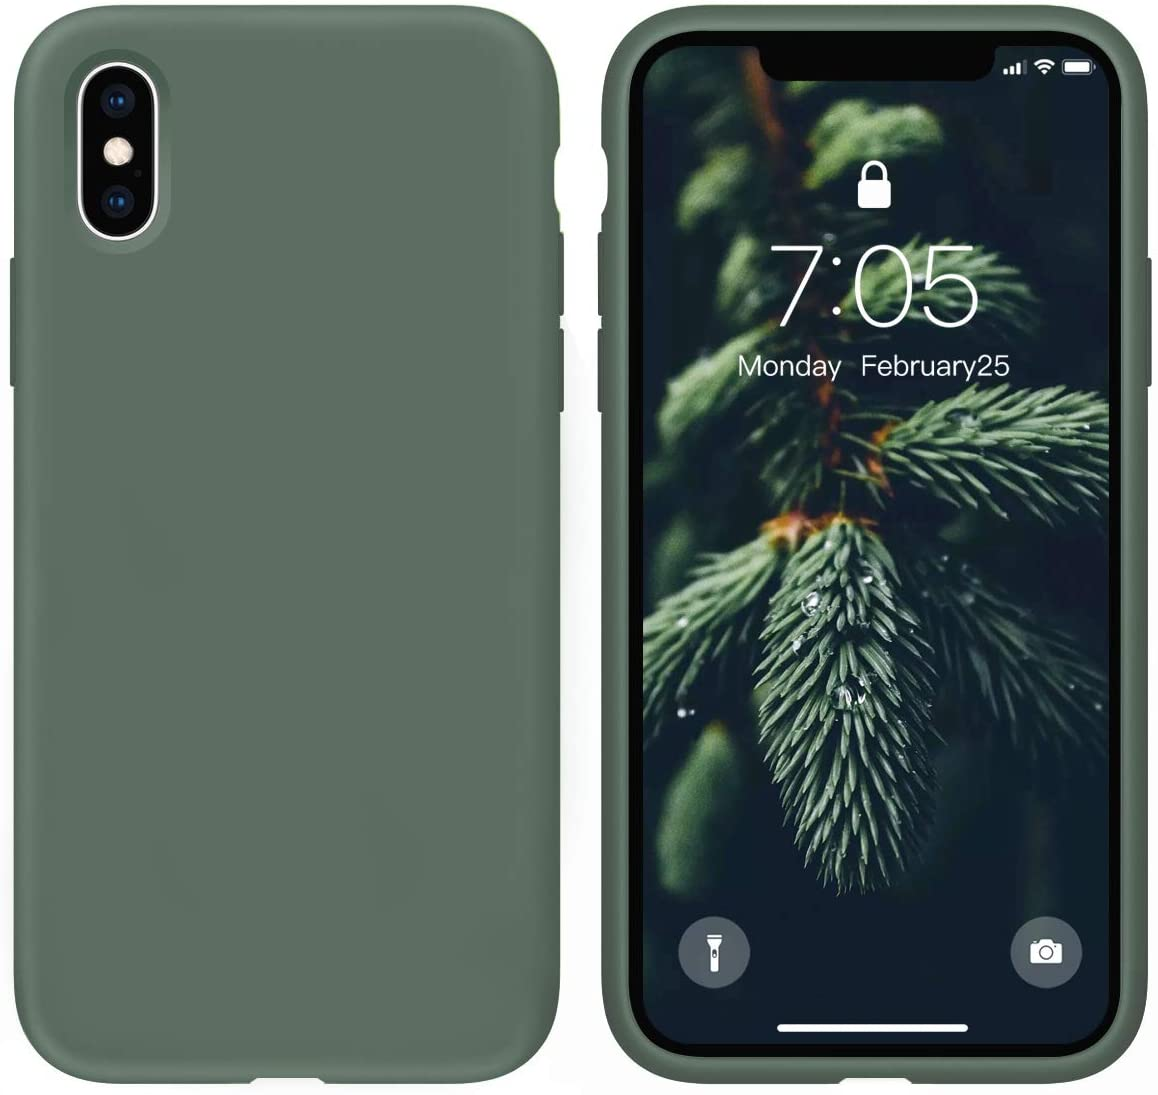 OUXUL Case for iPhone X/iPhone Xs case Liquid Silicone Gel Rubber Phone Case, iPhone X/iPhone Xs 5.8 Inch Full Body Slim Soft Microfiber Lining Protective Case (Forest Green)